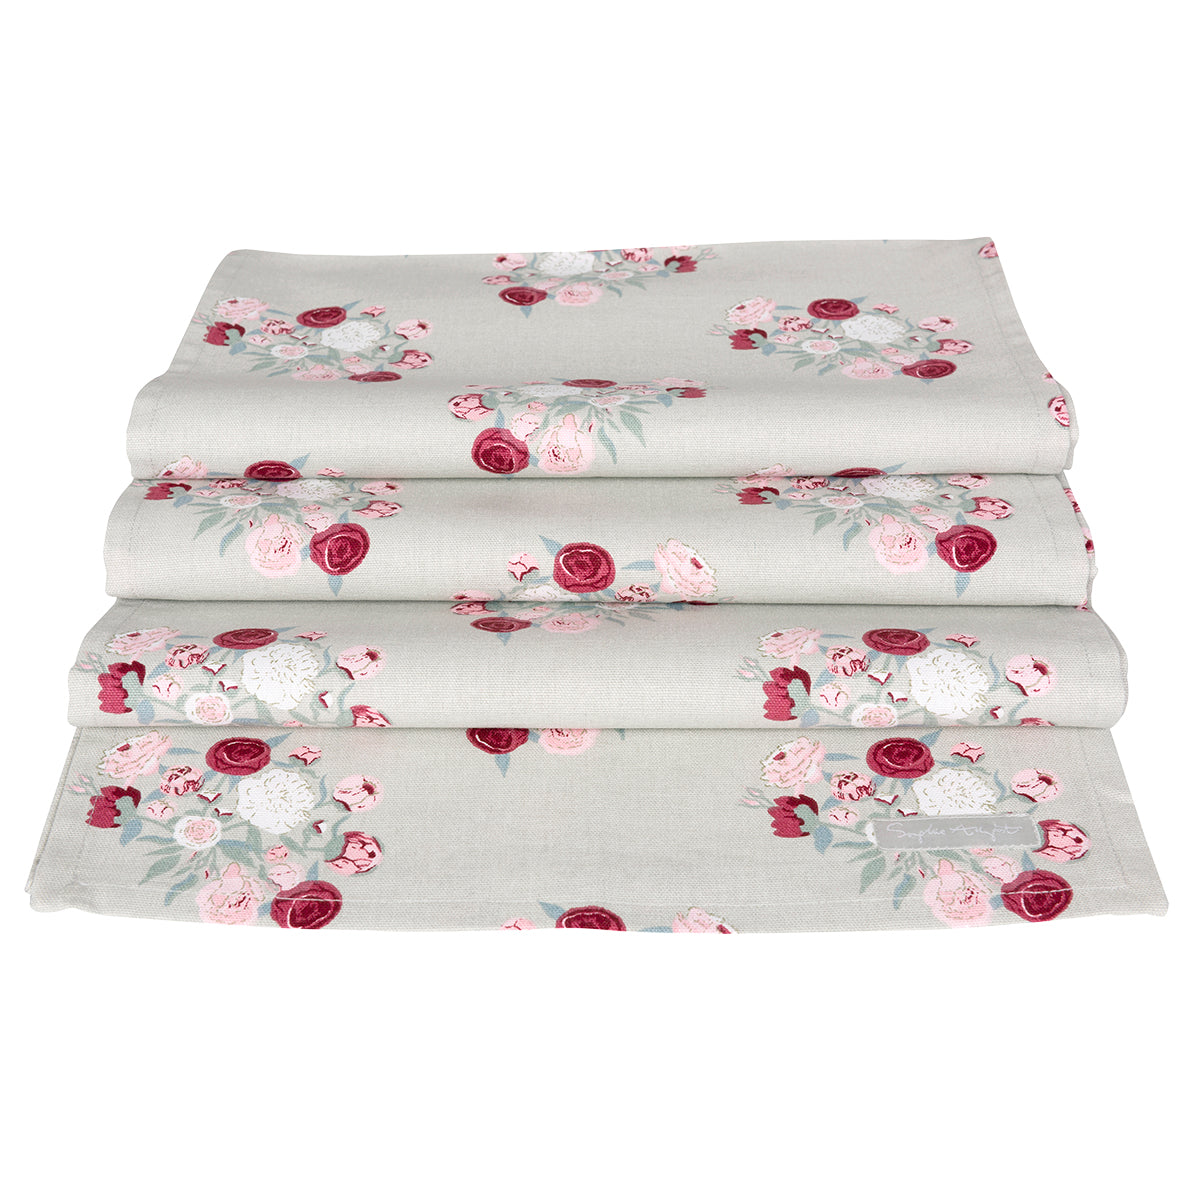 Peony Table Runner